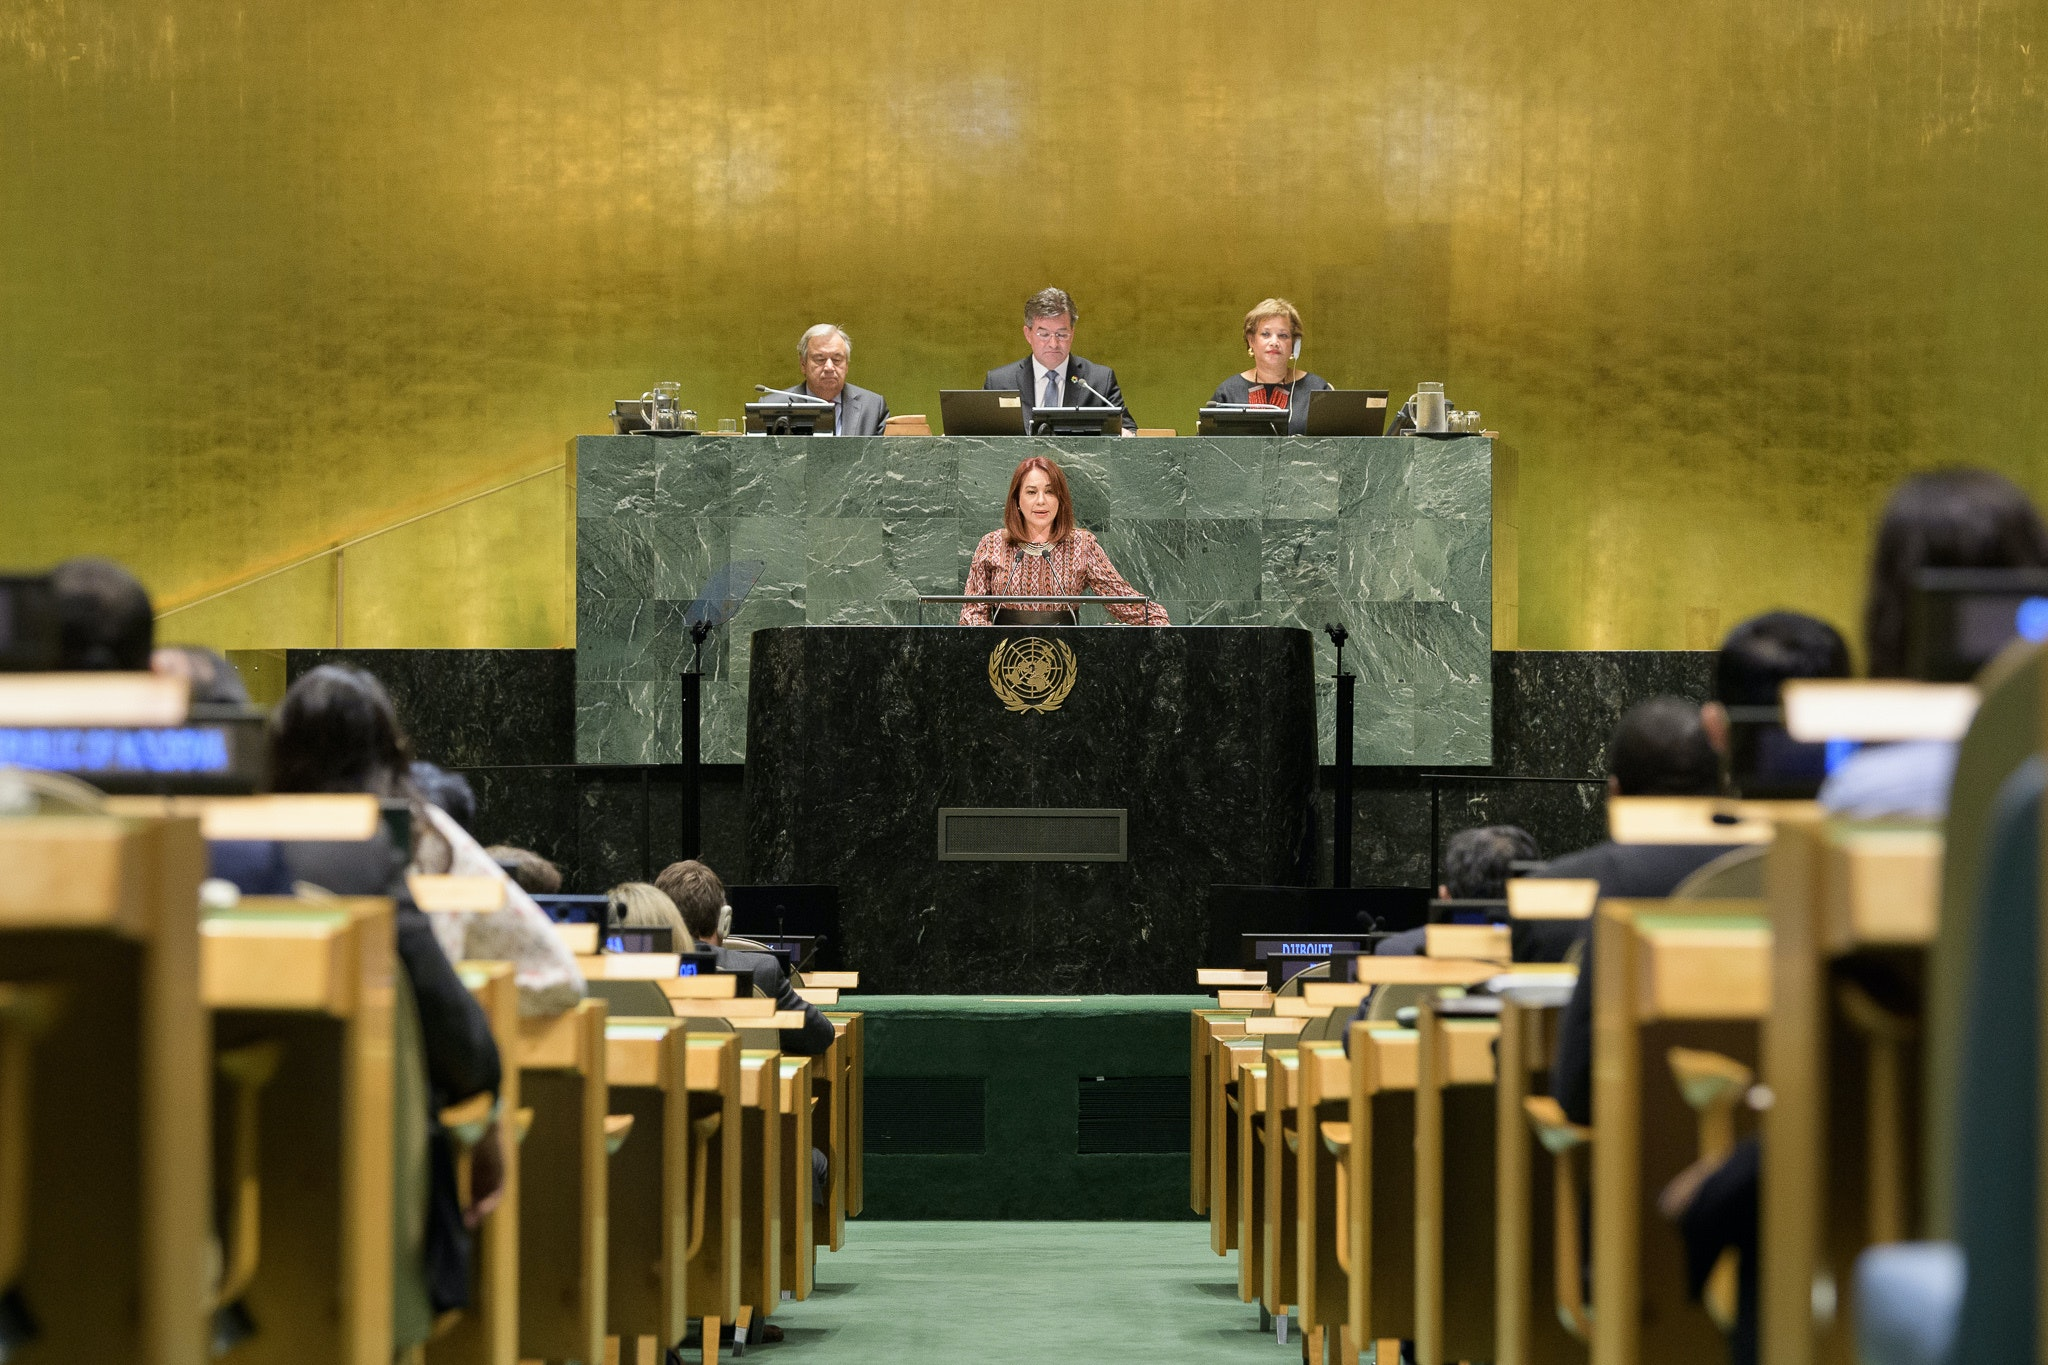 73rd President of the UN General Assembly, María Fernanda Espinosa Garcés, becomes an International Gender Champion